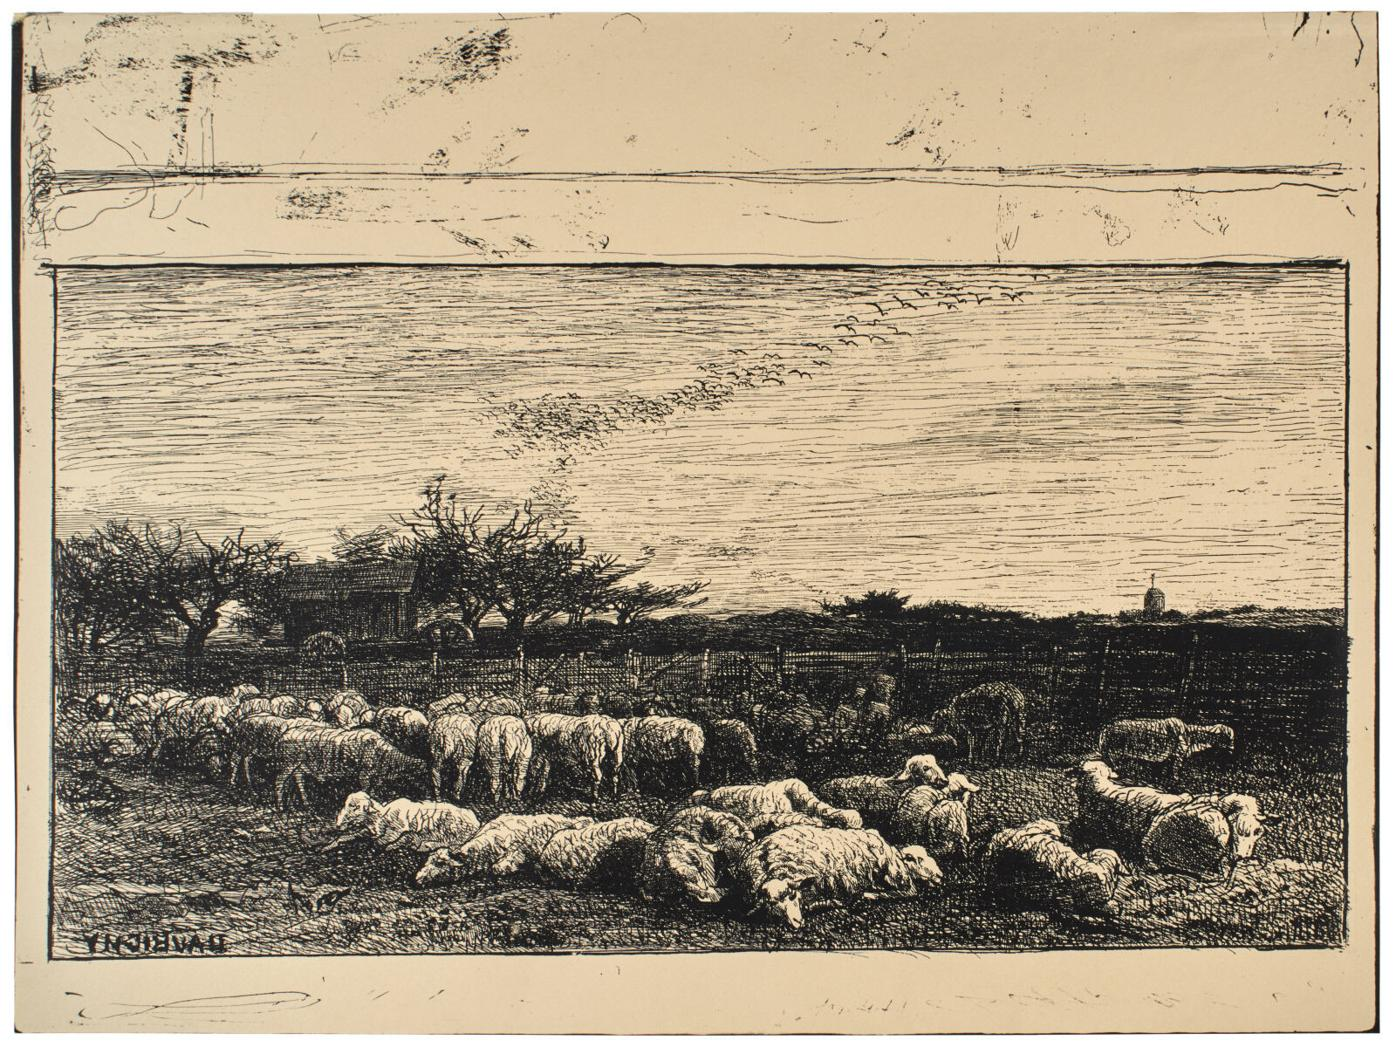 The Large Sheep Pasture